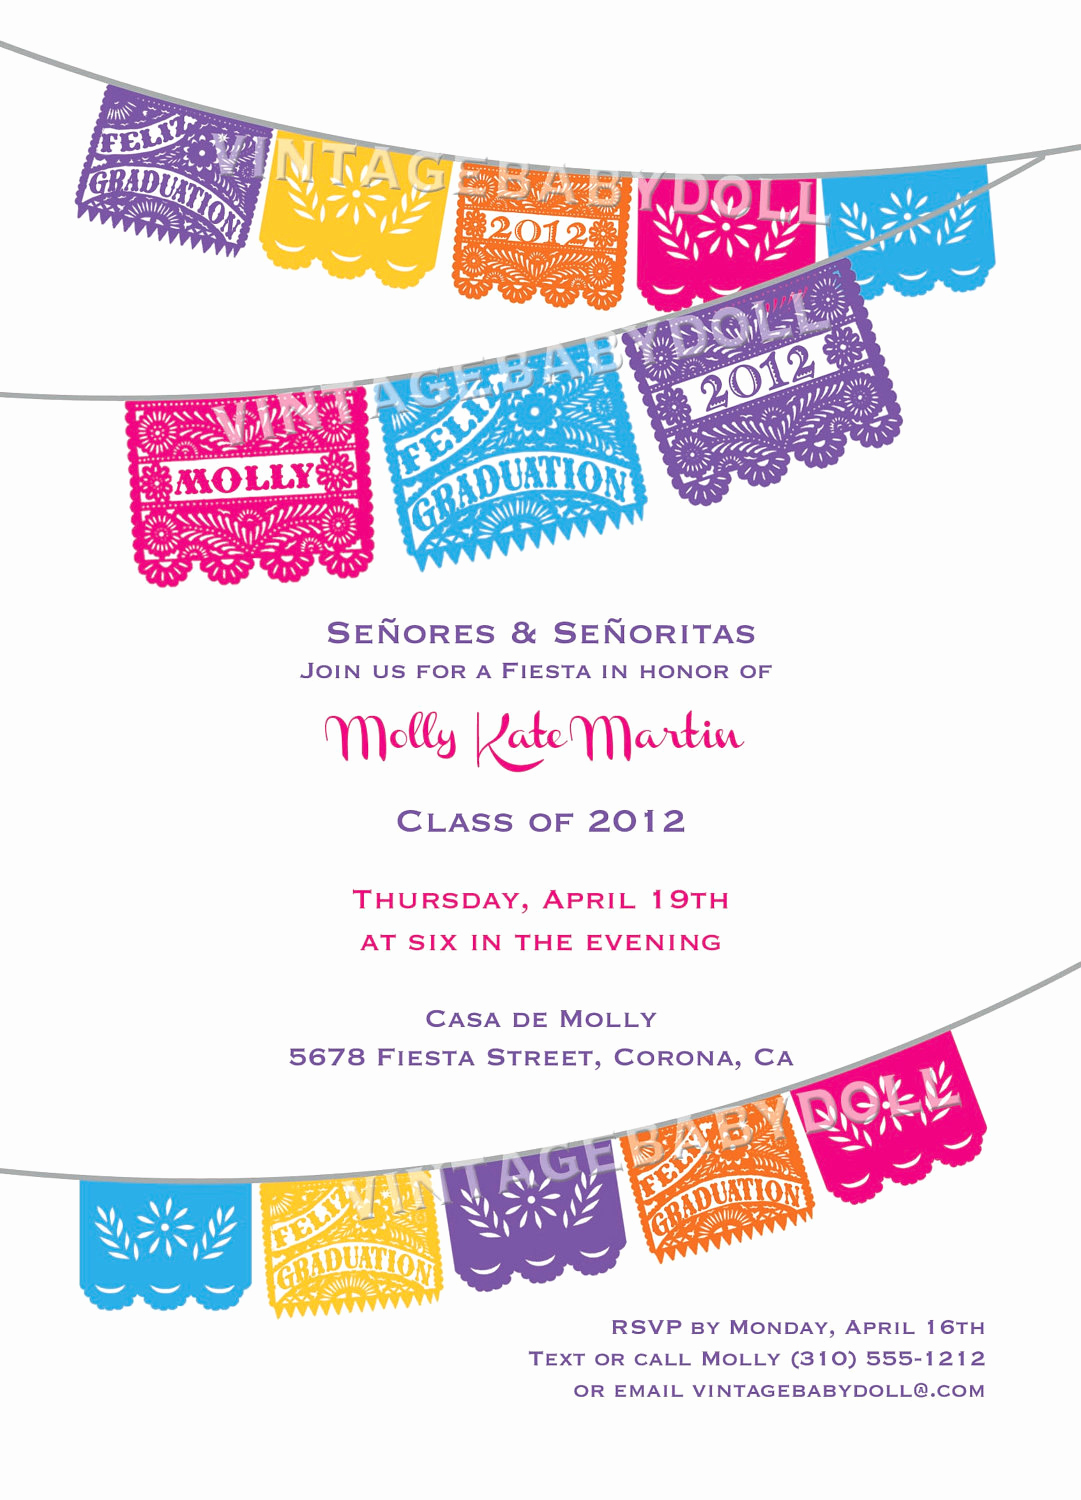 Papel Picado Invitation Template Free Unique Papel Picado Graduation Festive Papel Picado Fiesta Invitation